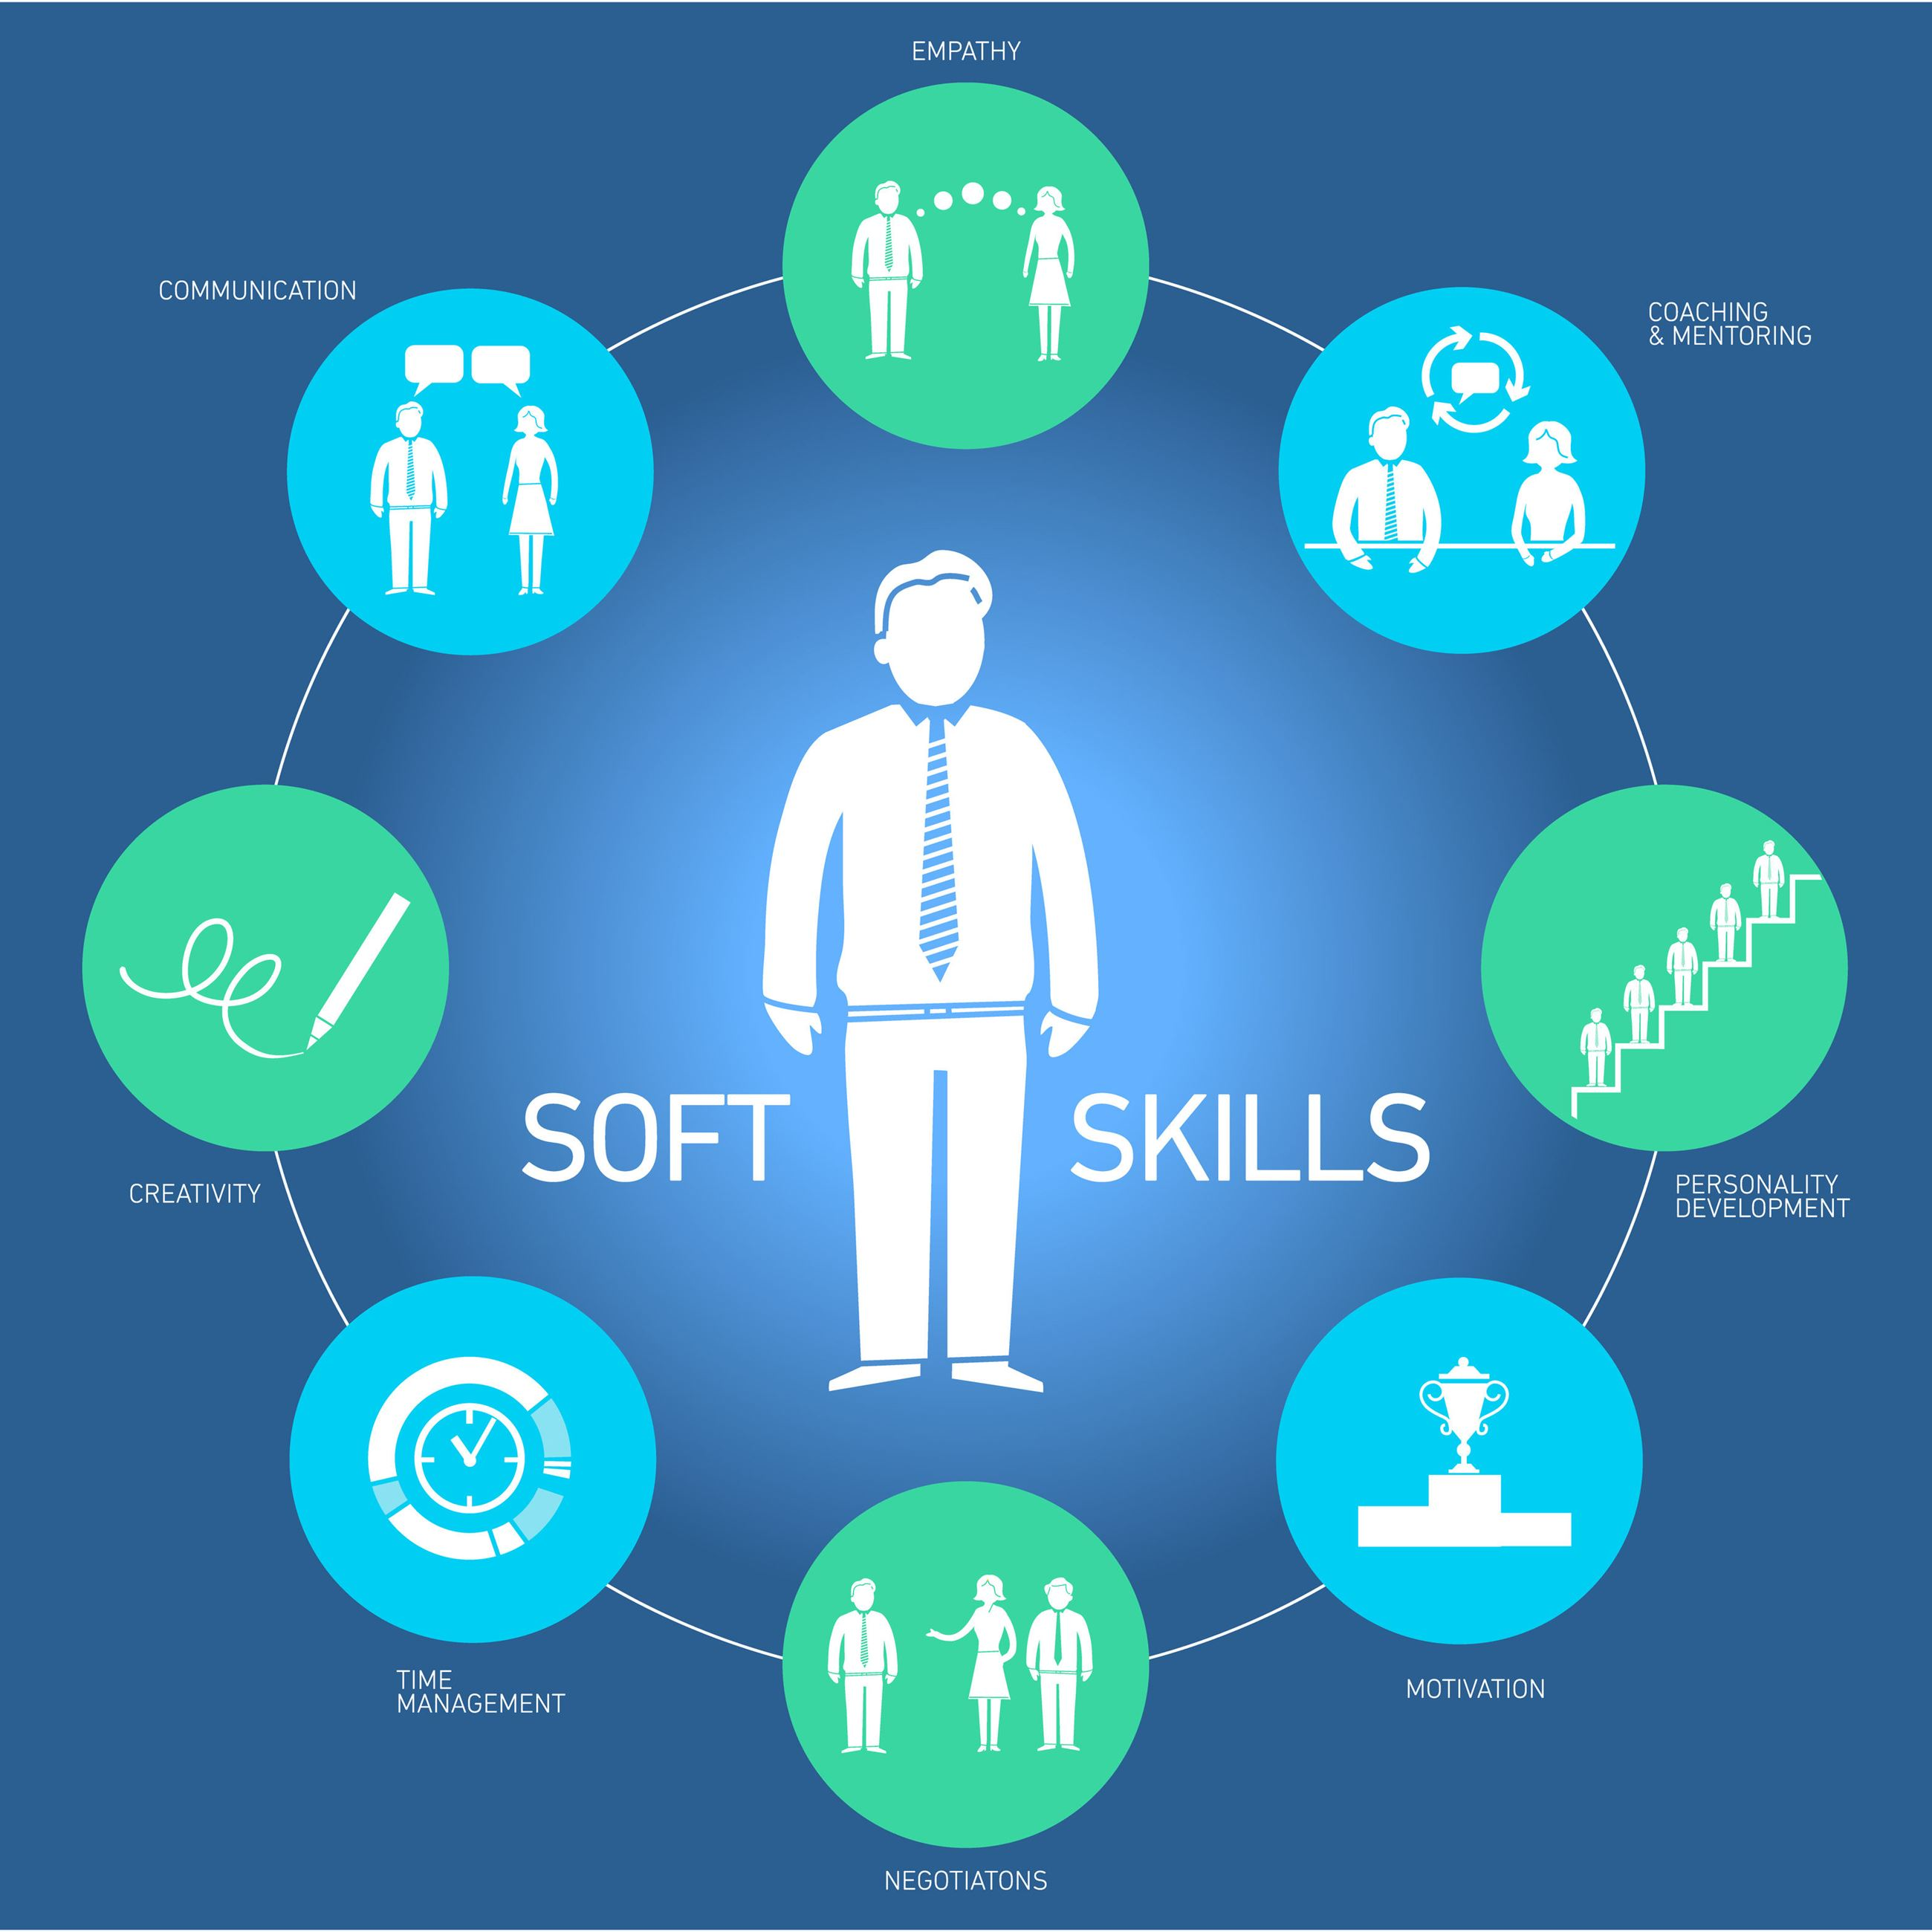 softskills-man-icon